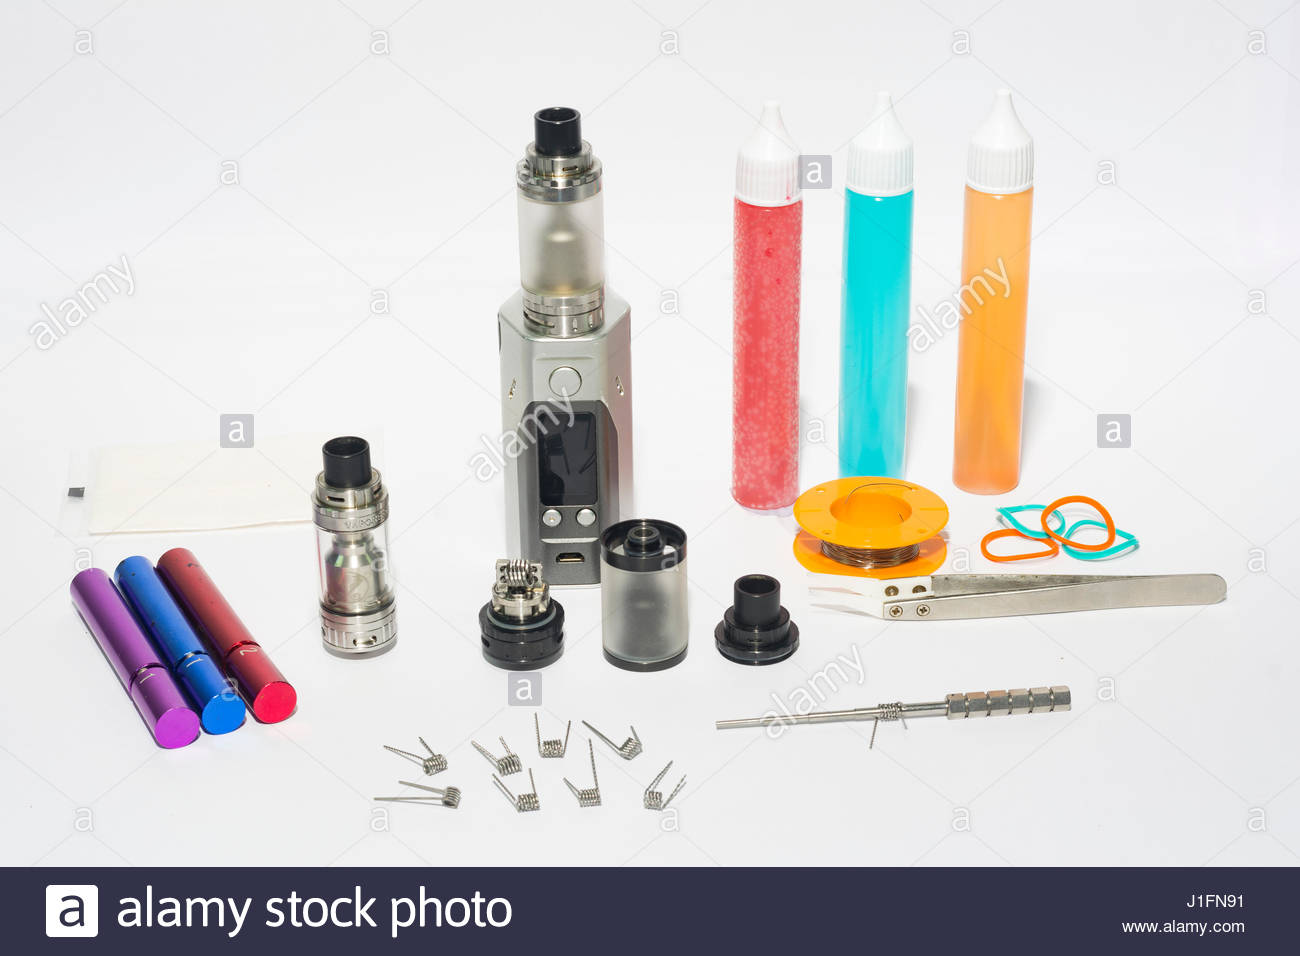 e cigarette set on isolated white background composition photograph - Stock Image